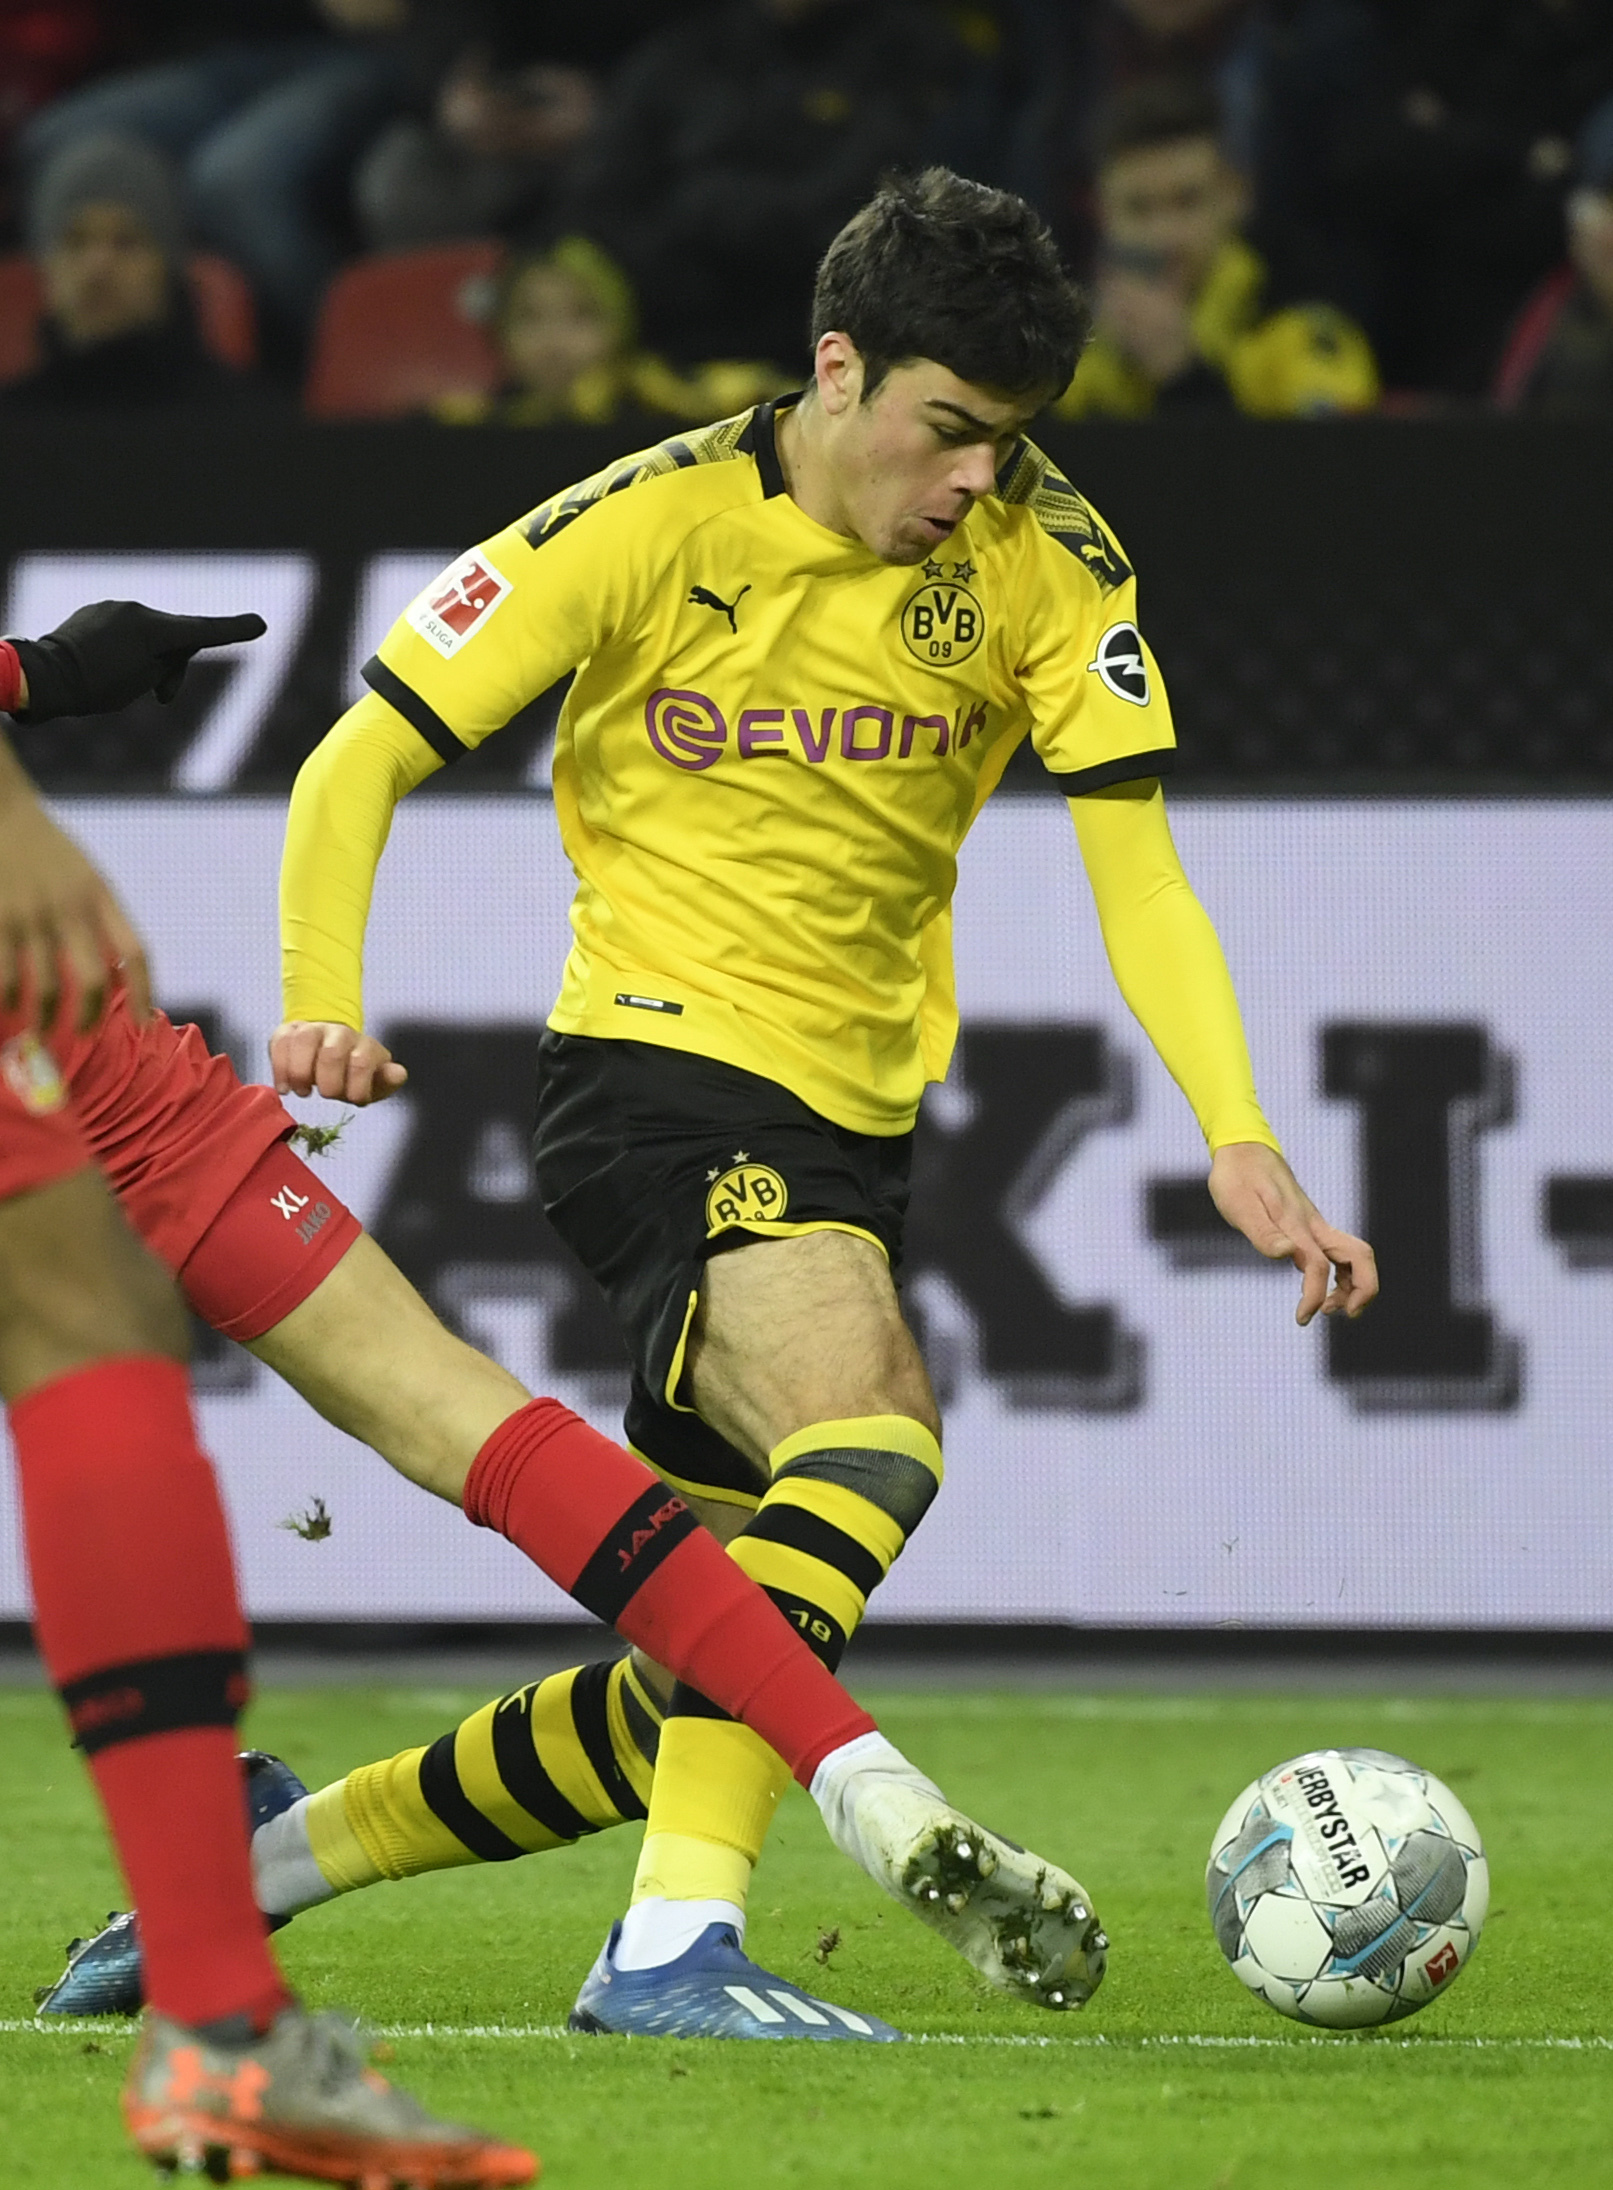 Dortmunds US midfielder Giovanni lt;HIT gt;Reyna lt;/HIT gt; vies for the ball during the German first division Bundesliga football match Bayer 04 Leverkusen vs BVB Borussia Dortmund in Leverkusen, western Germany on February 8, 2020. (Photo by INA FASSBENDER / AFP) / RESTRICTIONS: DFL REGULATIONS PROHIBIT ANY USE OF PHOTOGRAPHS AS IMAGE SEQUENCES AND/OR QUASI-VIDEO